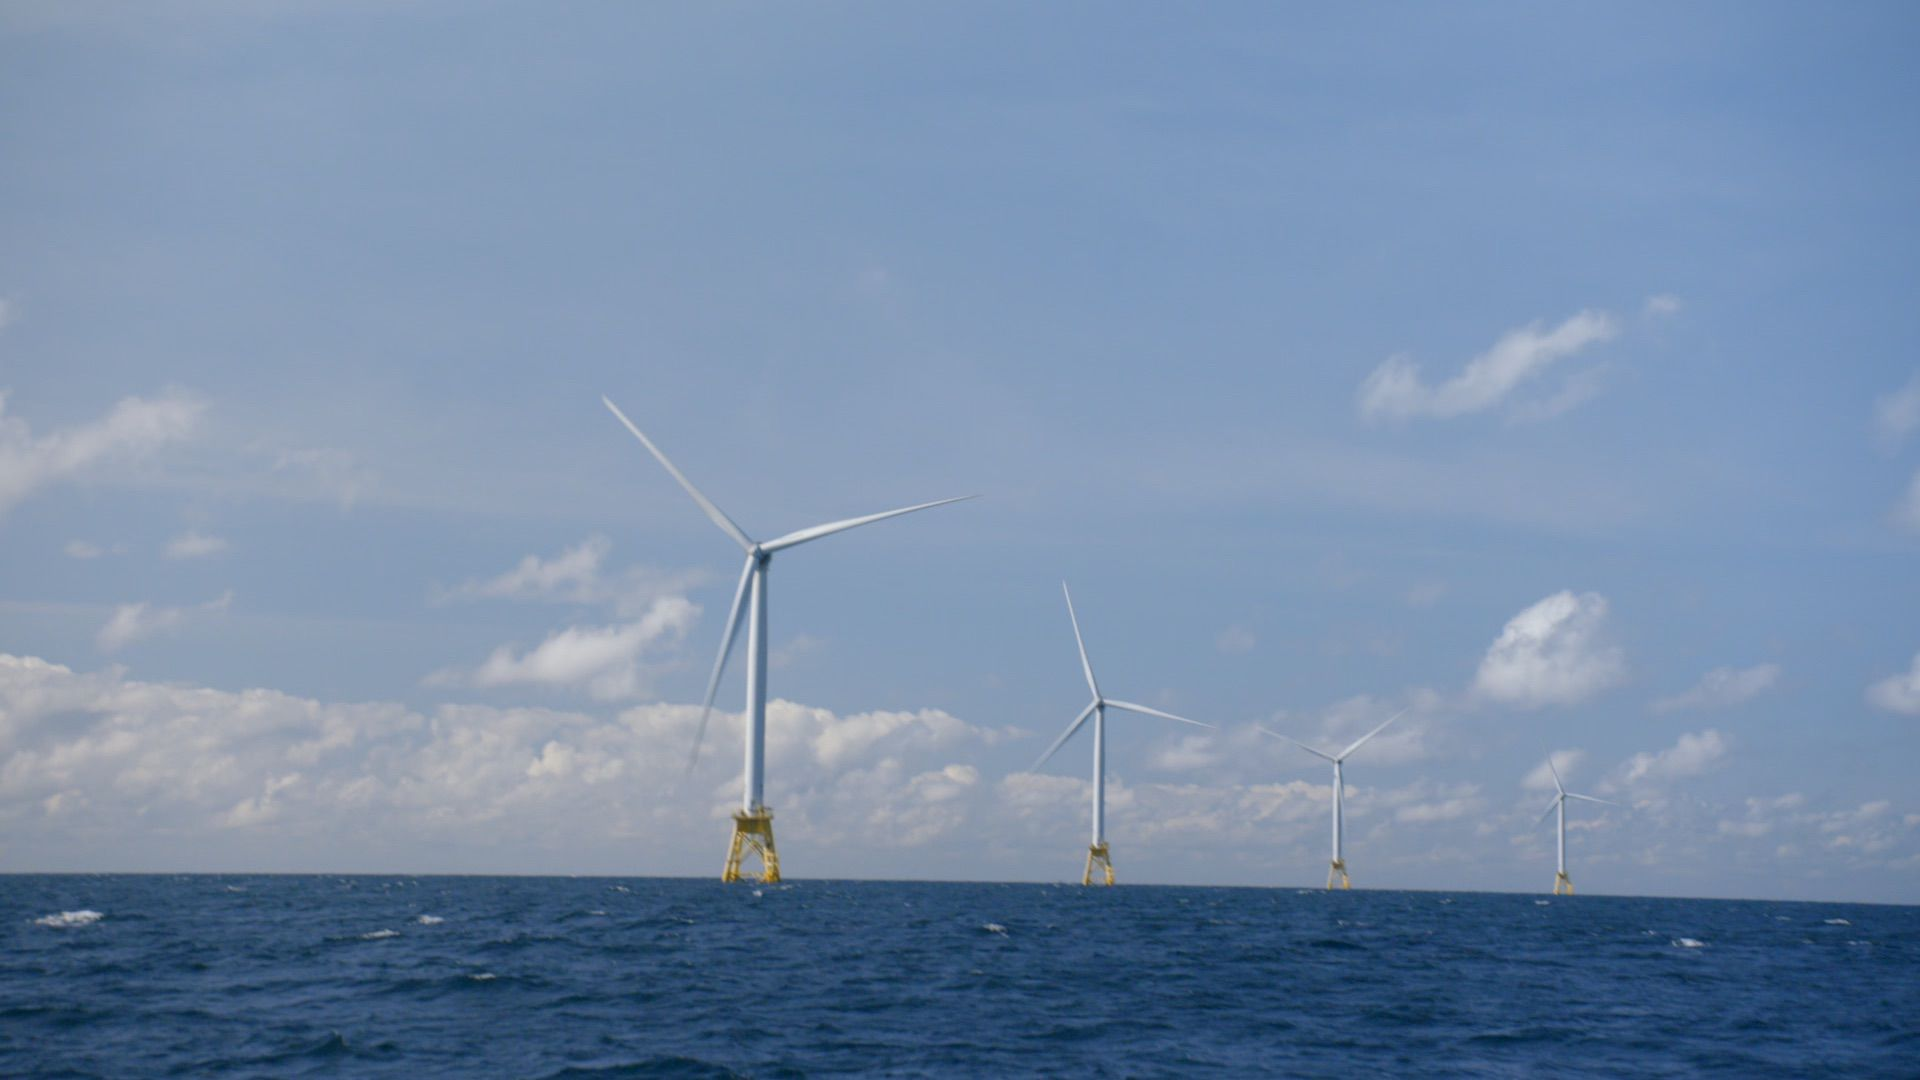 Still frame of offshore wind farm footage from Axios on HBO.